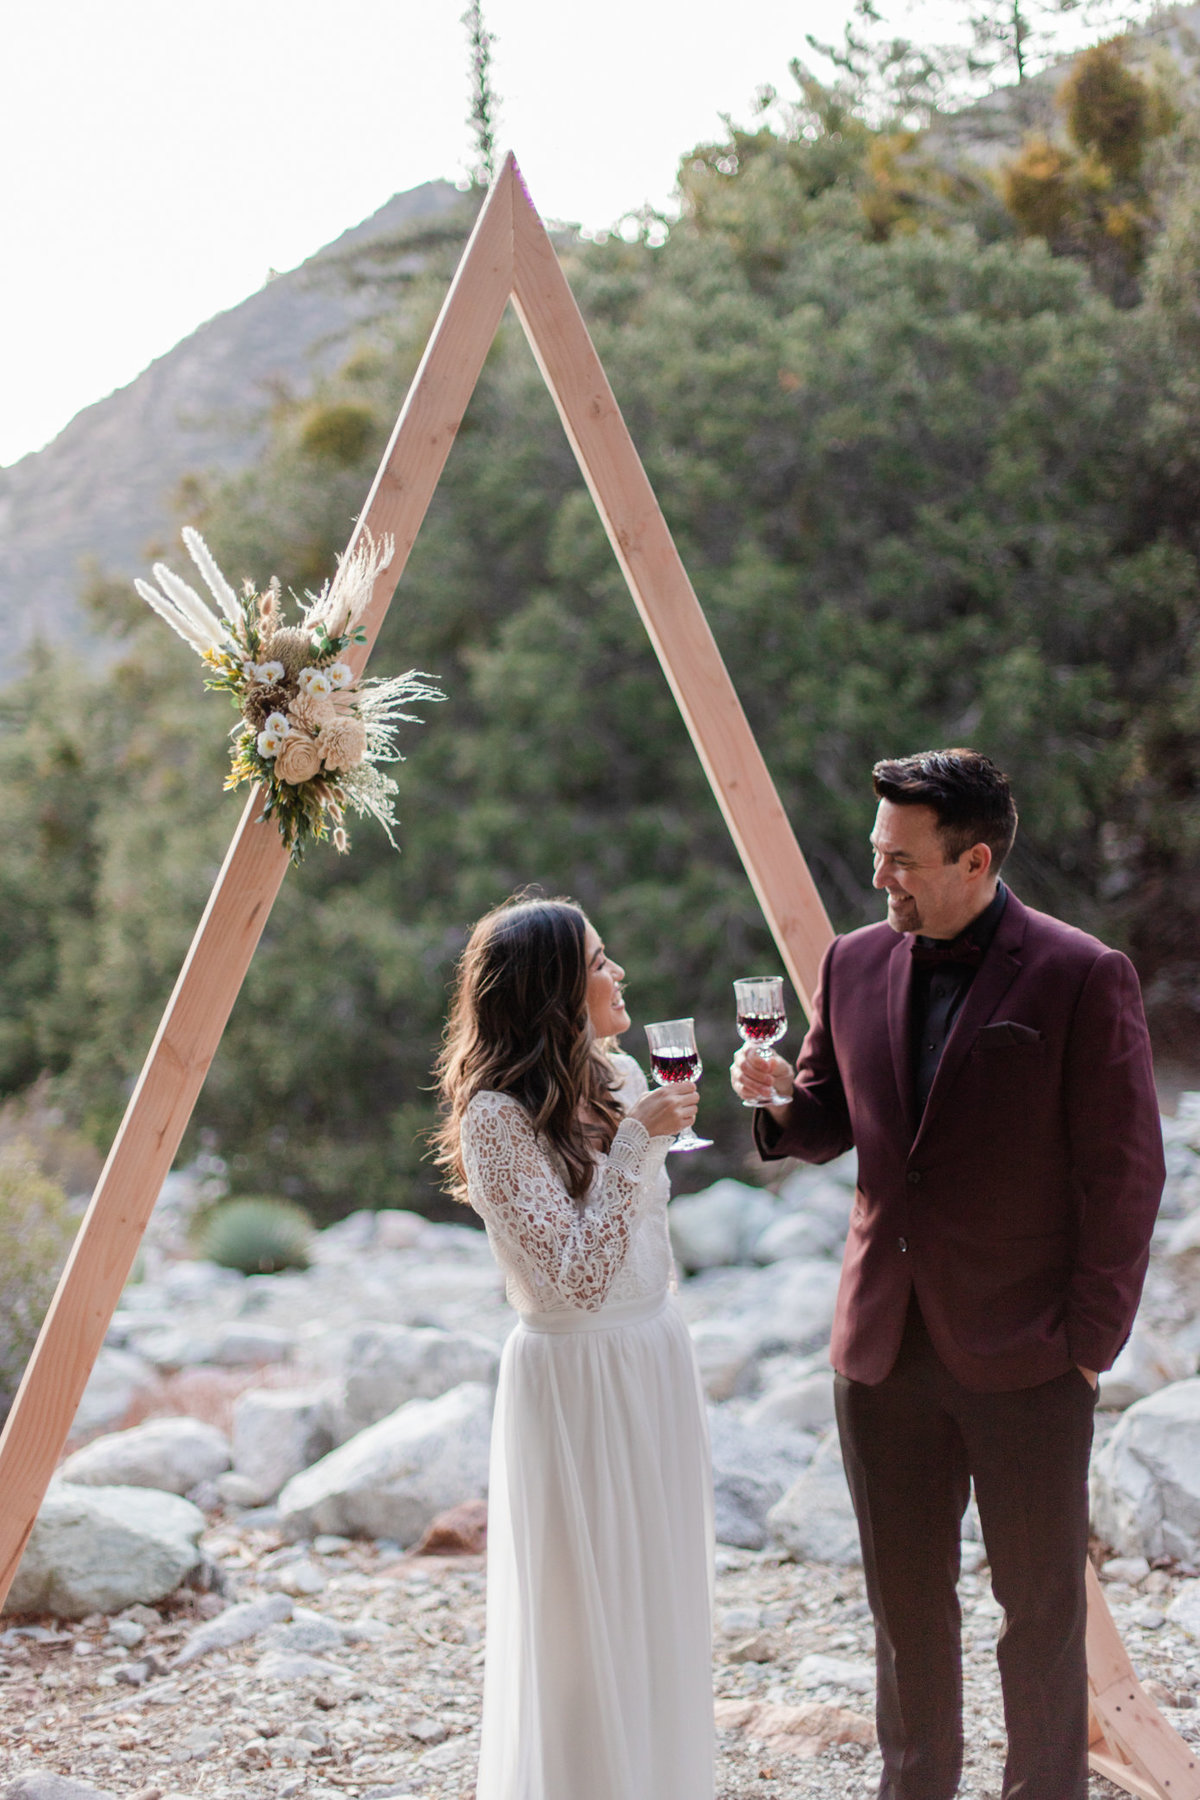 Mt. Baldy Elopement, Mt. Baldy Styled Shoot, Mt. Baldy Wedding, Forest Elopement, Forest Wedding, Boho Wedding, Boho Elopement, Mt. Baldy Boho, Forest Boho, Woodland Boho-51